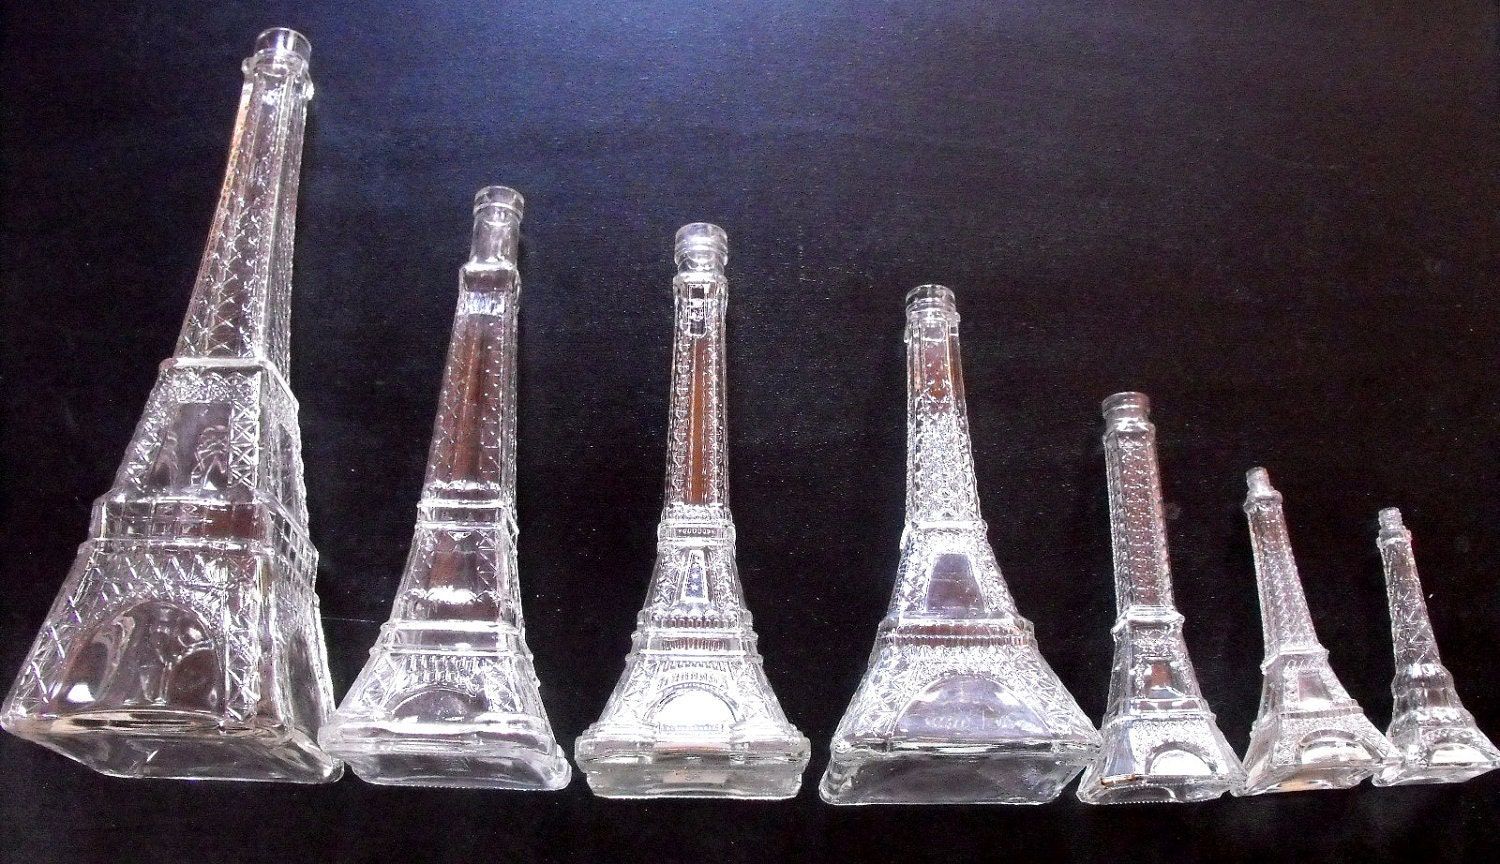 """Eiffel Tower Bottles in 7 'NOW EIGHT' Graduated Sizes from 18"""" to 6 1/2"""" Super and 'So French'"""